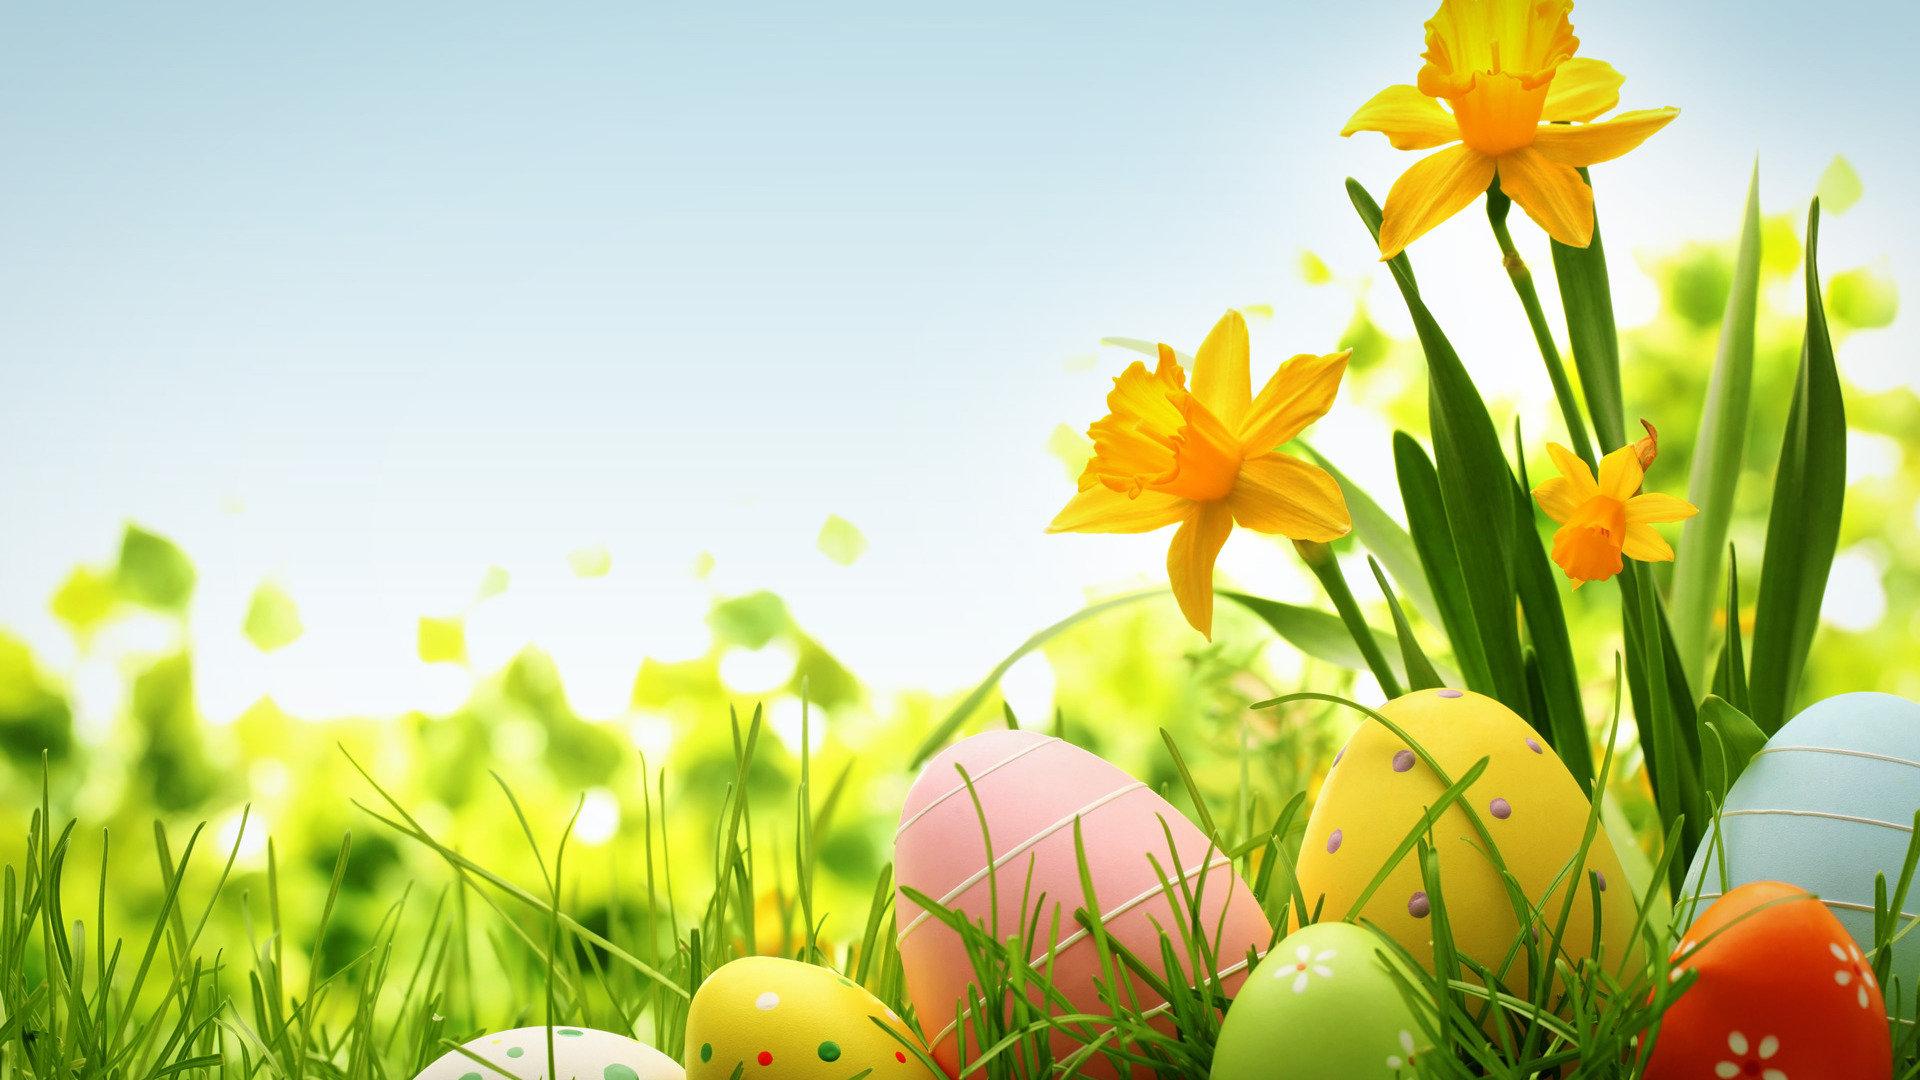 Colorful Easter Eggs Wallpaper 1920x1080px